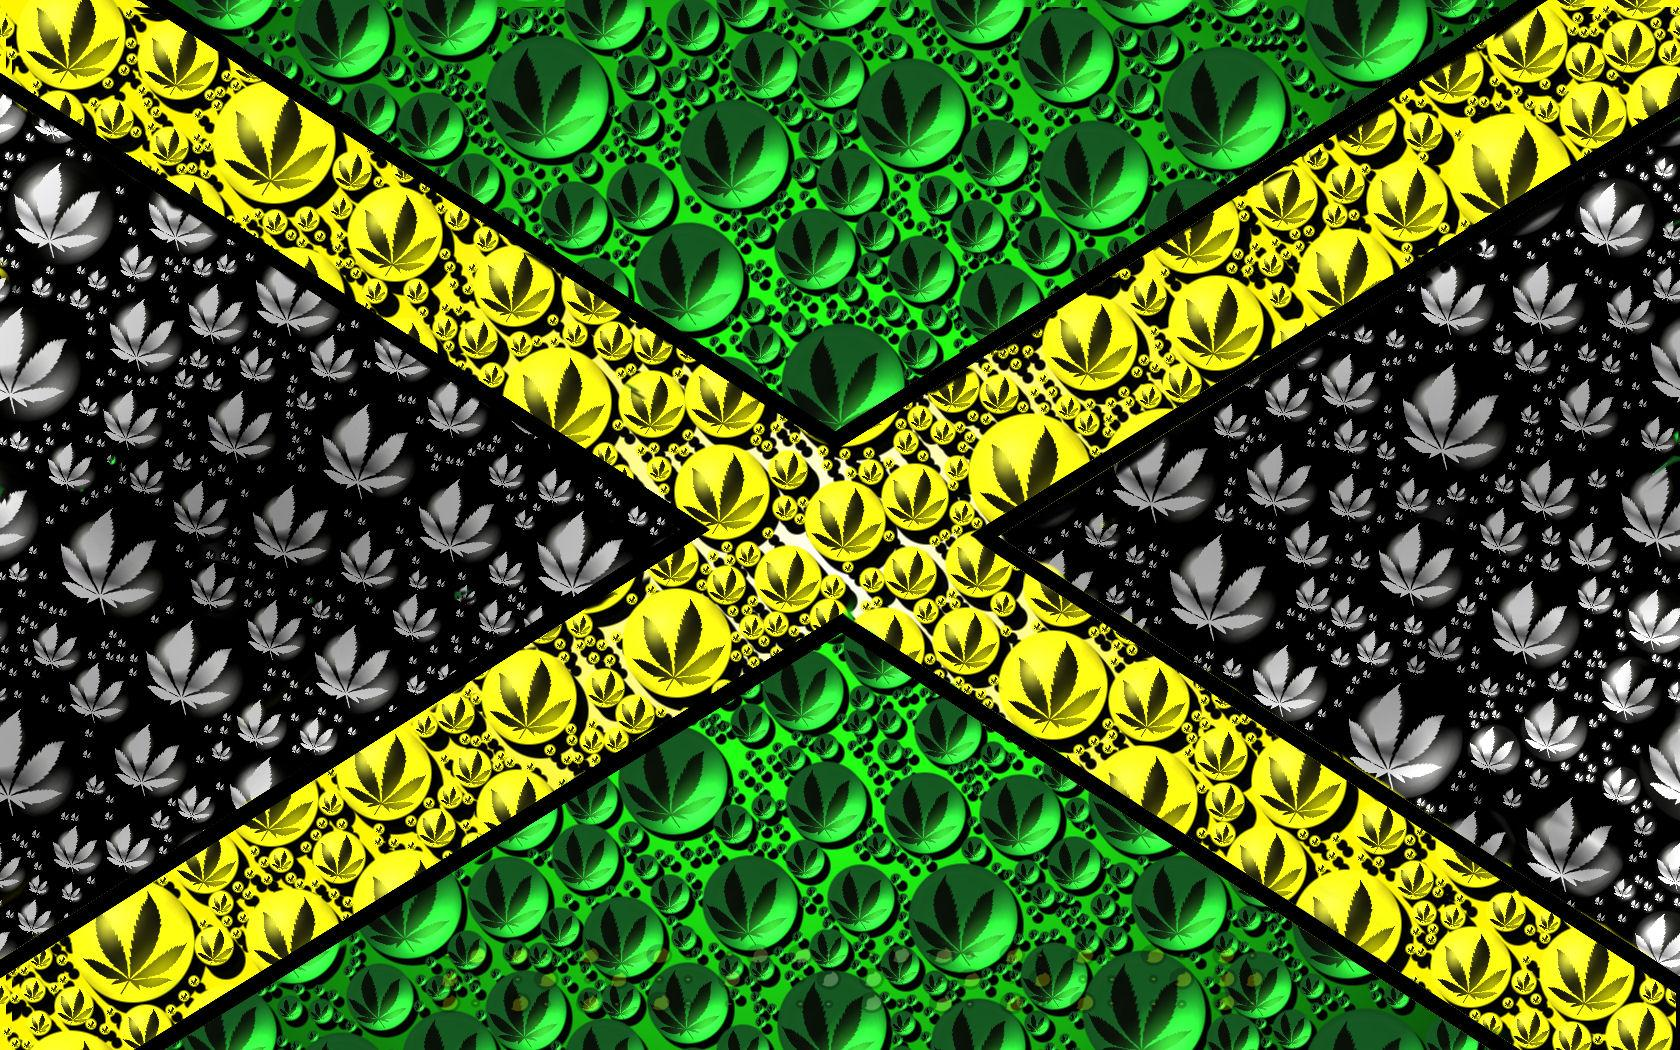 Jamaican flag from cannabis